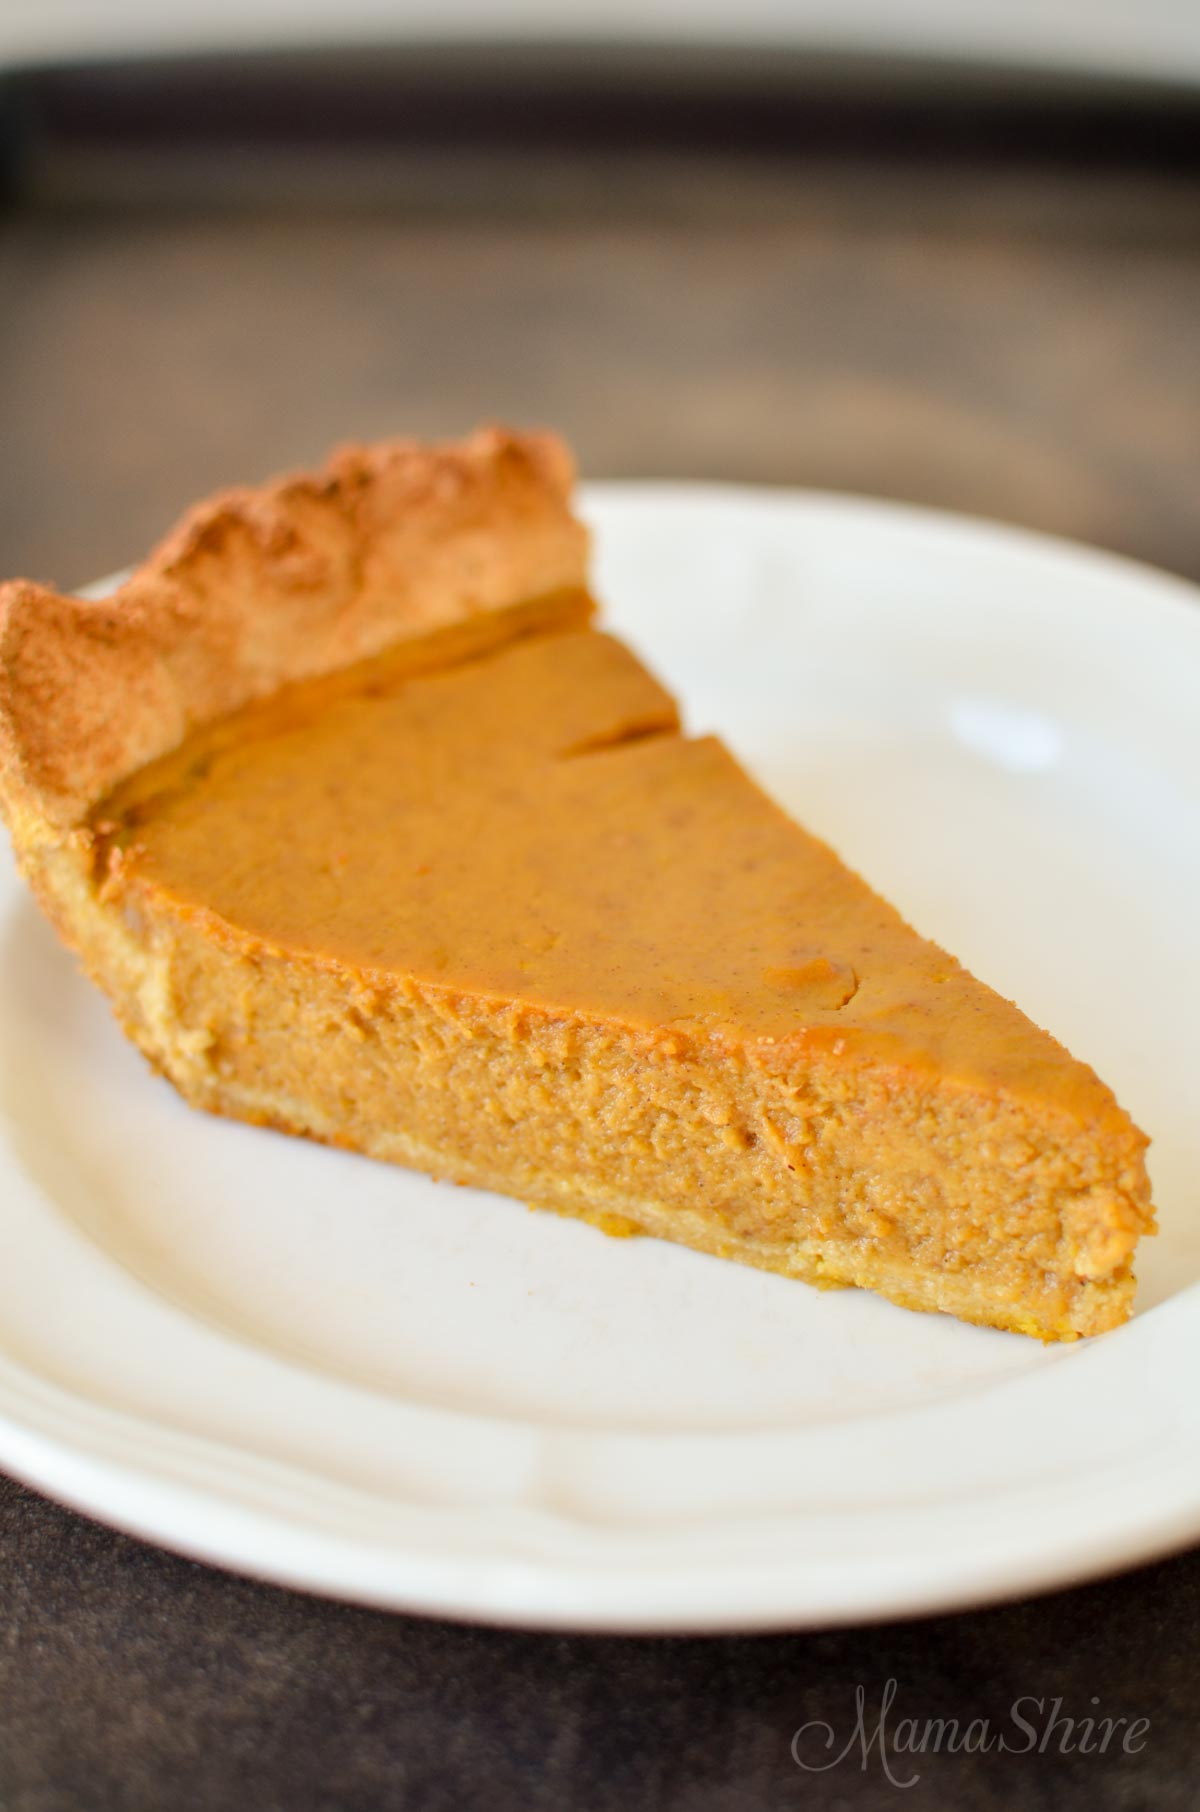 Pumpkin Pie - Gluten-Free, Dairy-Free, THM, and Sugar-Free. Delicious low-carb pumpkin pie for Thanksgiving. On plan with Trim Healthy Mama. #pumpkinpie #dairyfreepumpkinpie #thm #trimhealthymama -